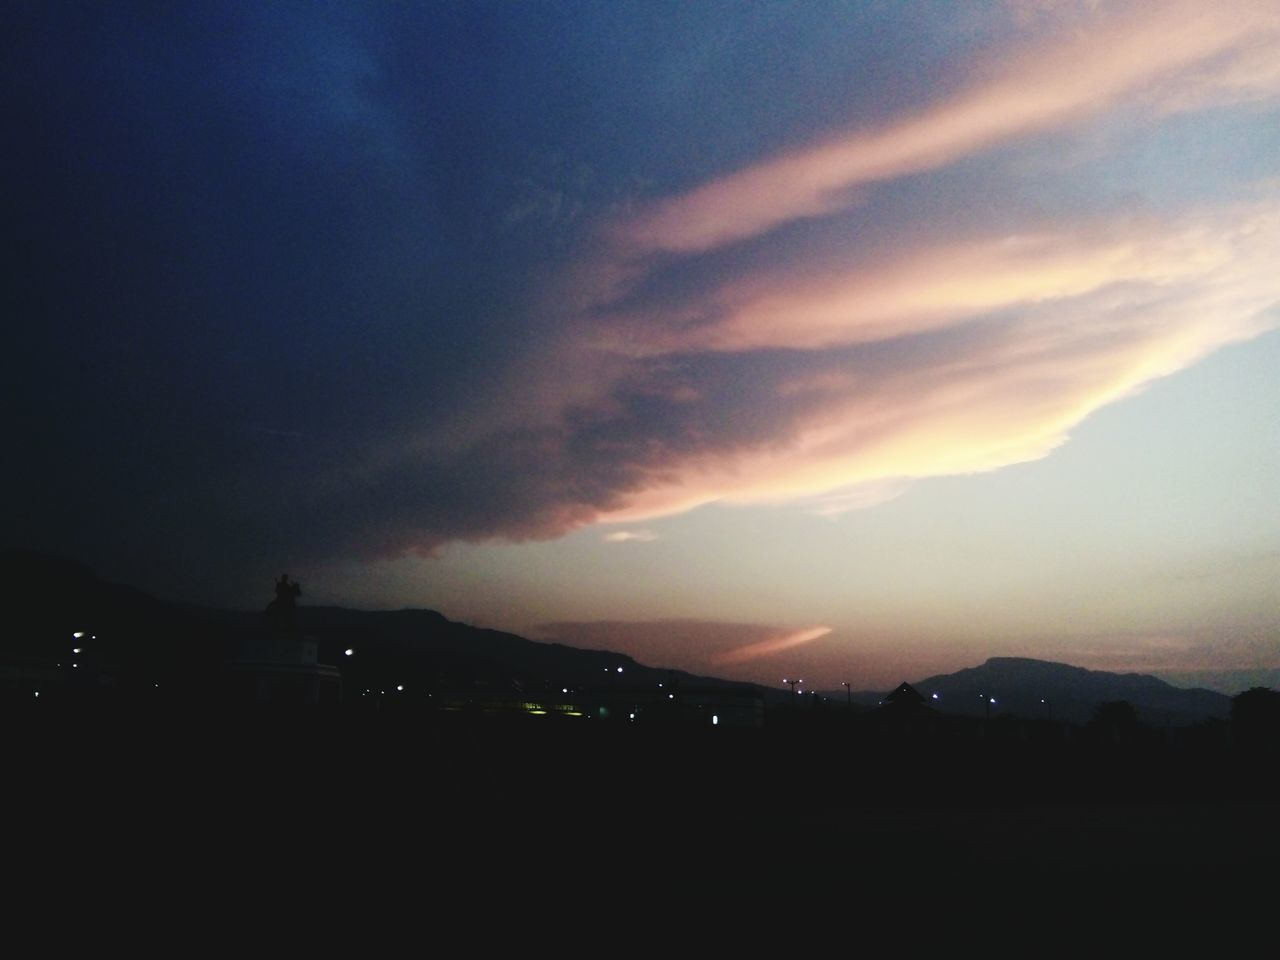 sky, silhouette, night, beauty in nature, nature, no people, dusk, sunset, tranquility, tranquil scene, scenics, outdoors, illuminated, architecture